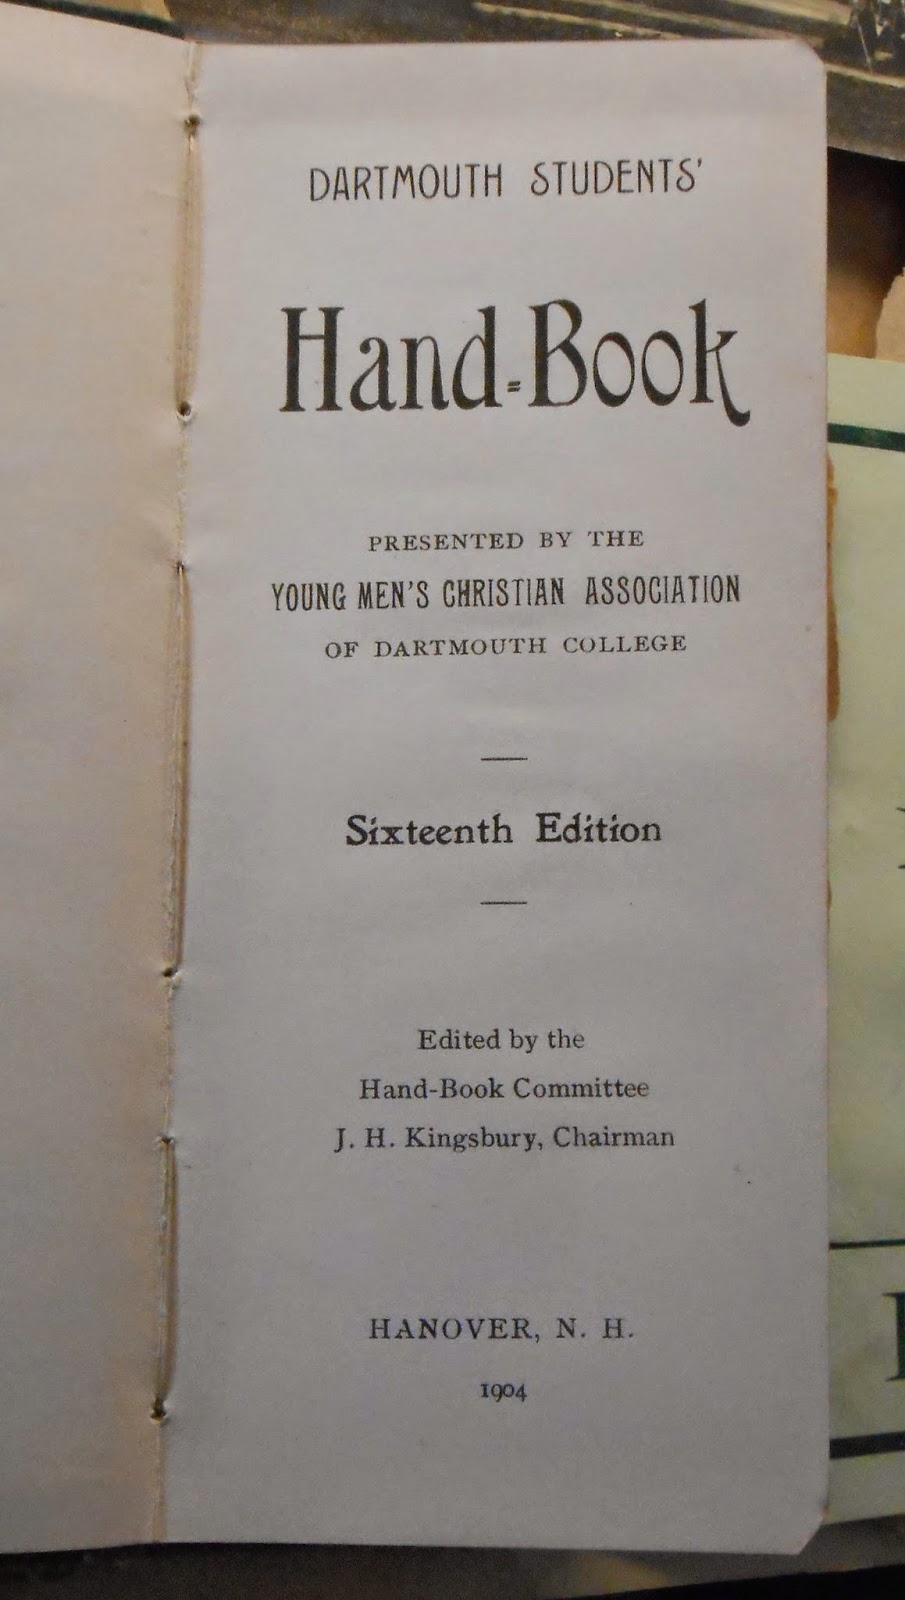 The title page for a student hand-book.